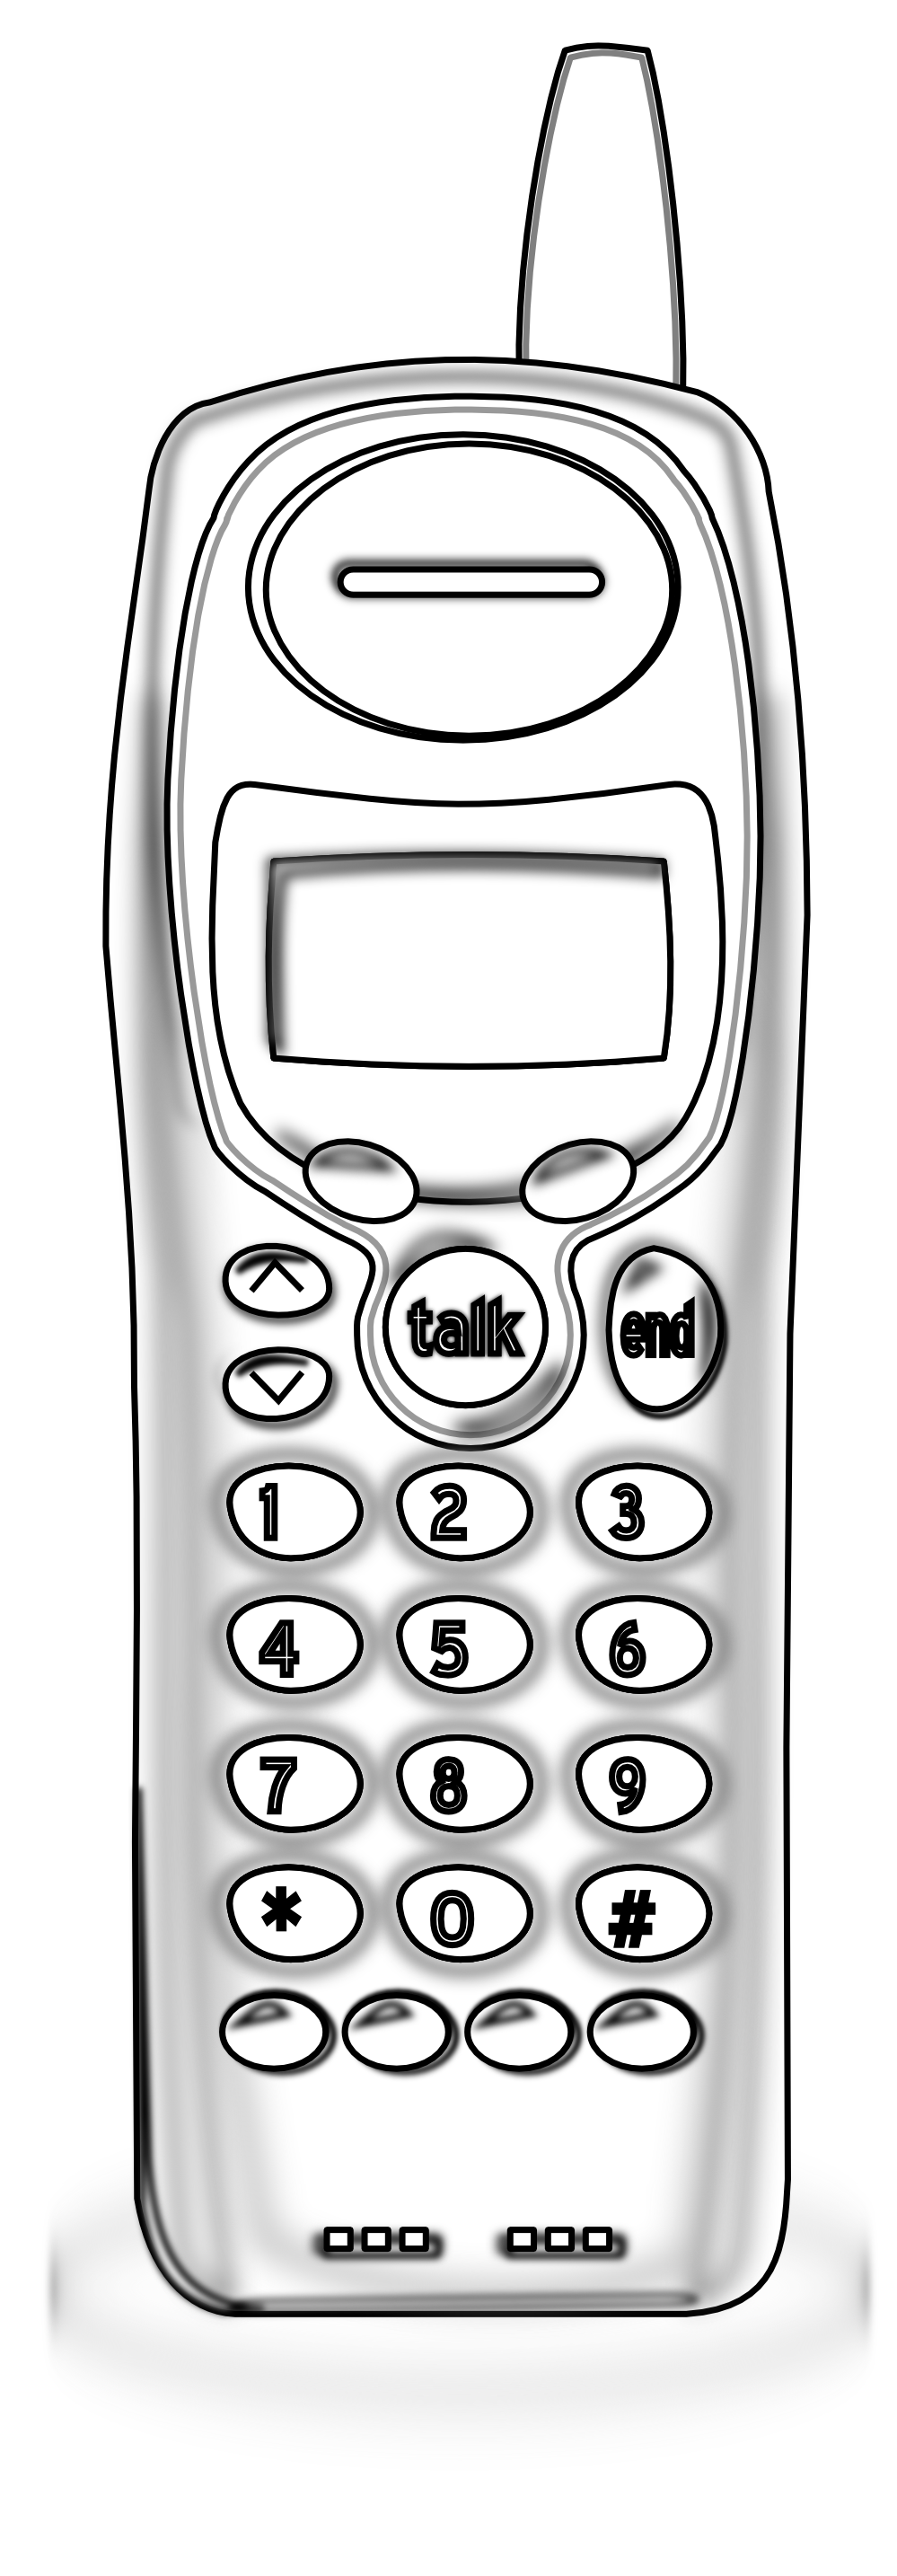 Clipartist net book cordless. Clipart phone telephony